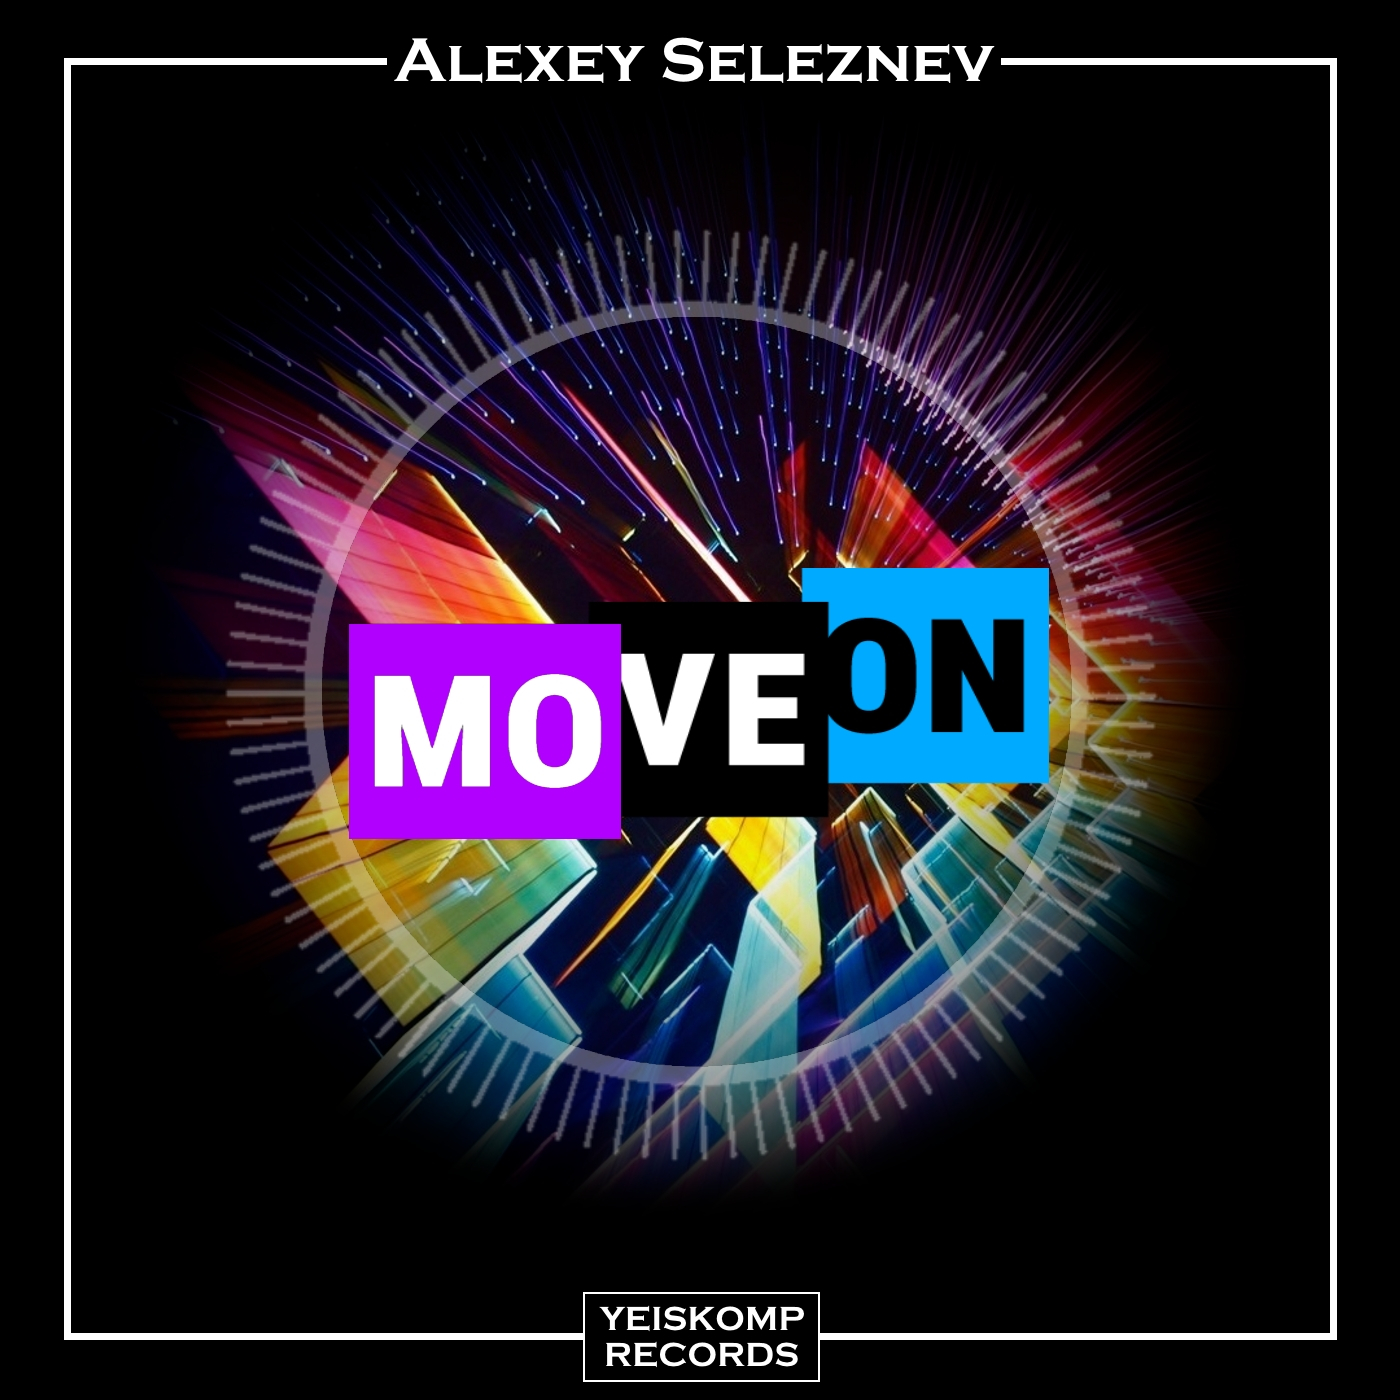 Alexey Seleznev - Move On (Original Mix)